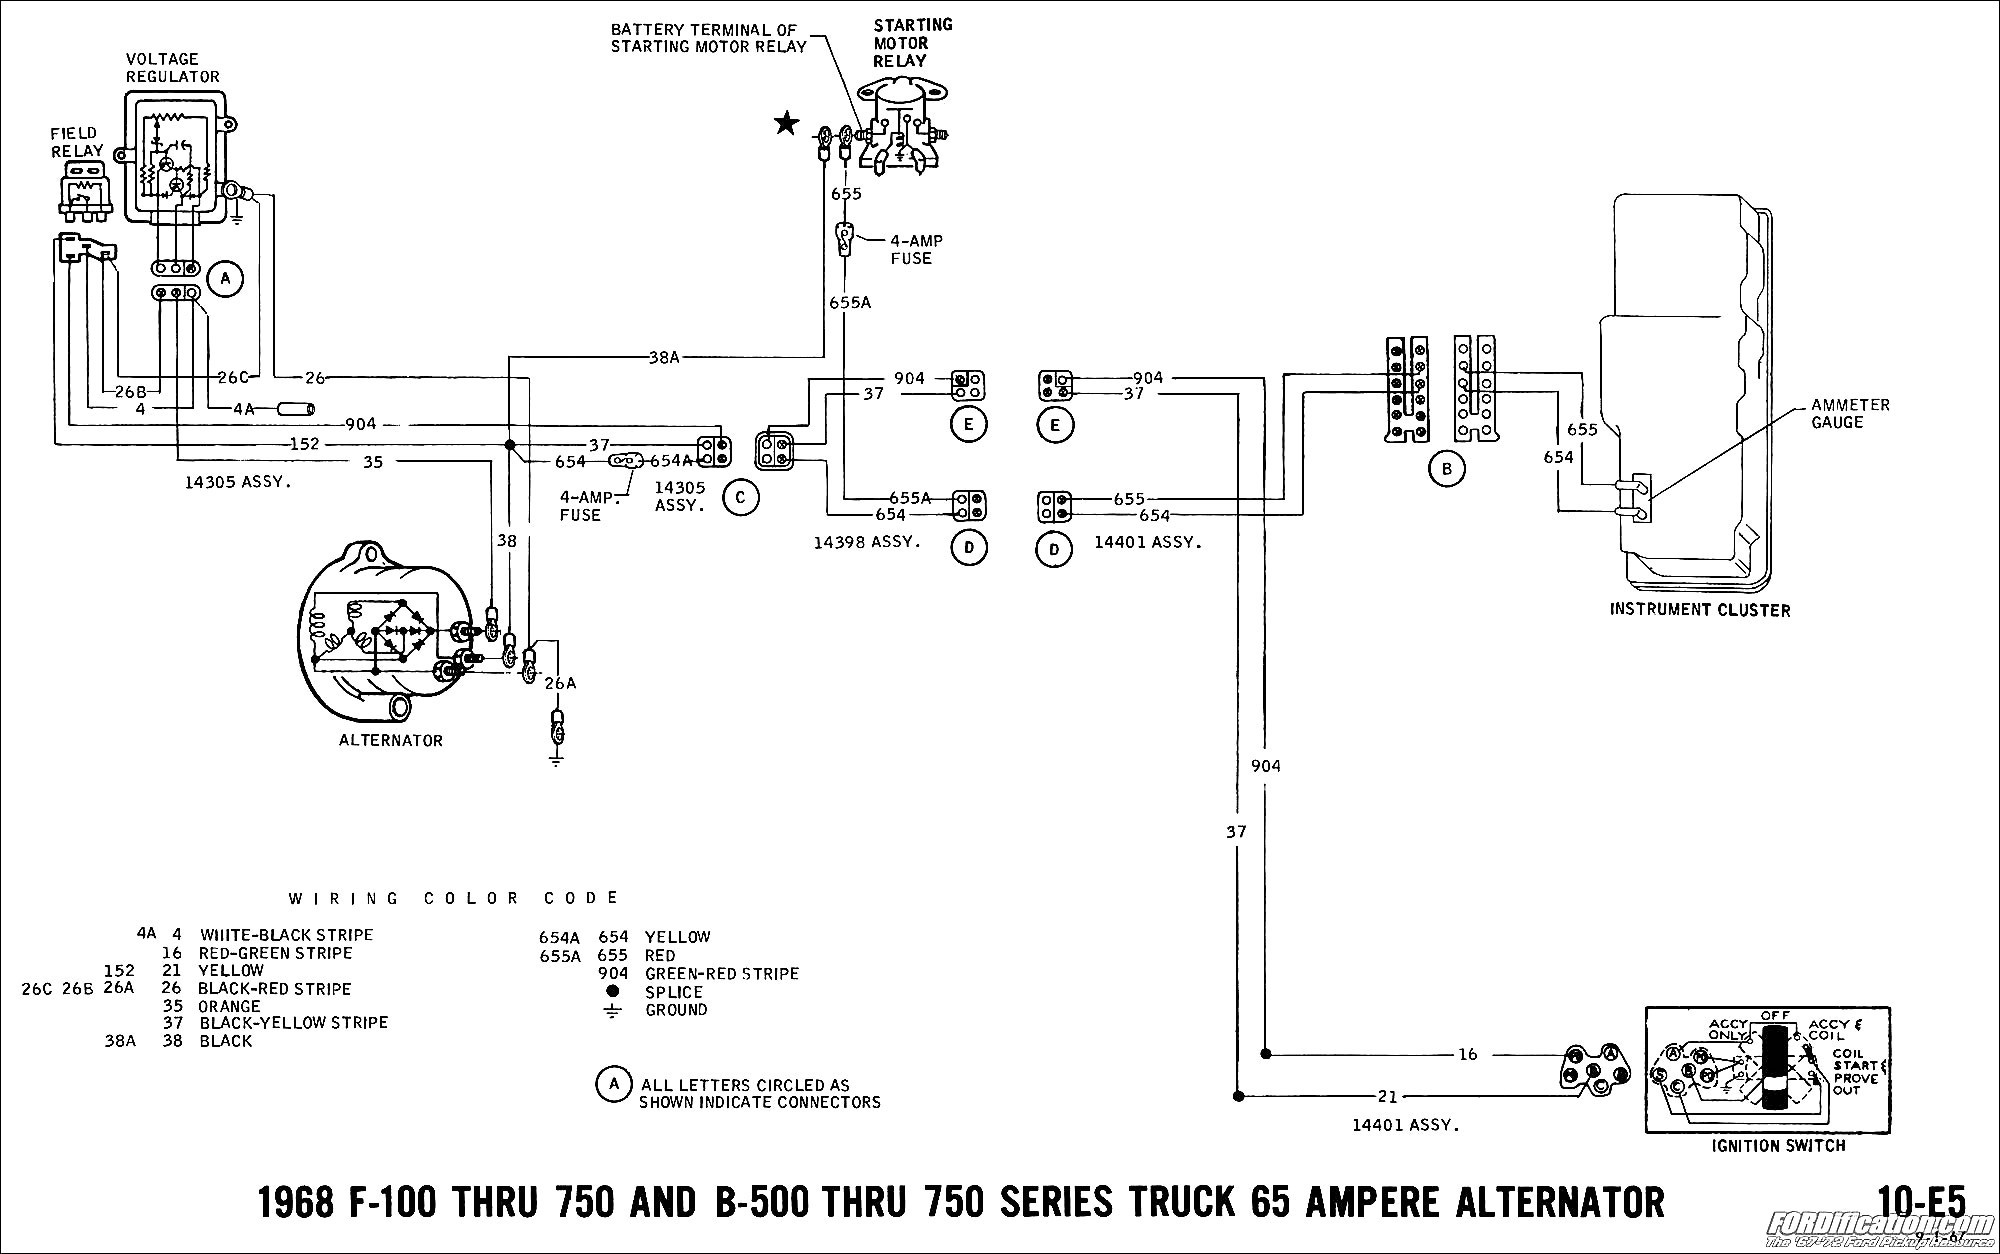 4500 Ford Backhoe Wiring Diagram - Wiring Diagrams Backhoe Ford Tractor Wiring Diagram on backhoe controls diagram, 4500 ford backhoe parts diagram, 4500 ford backhoe repair manual, 4500 ford backhoe engine,